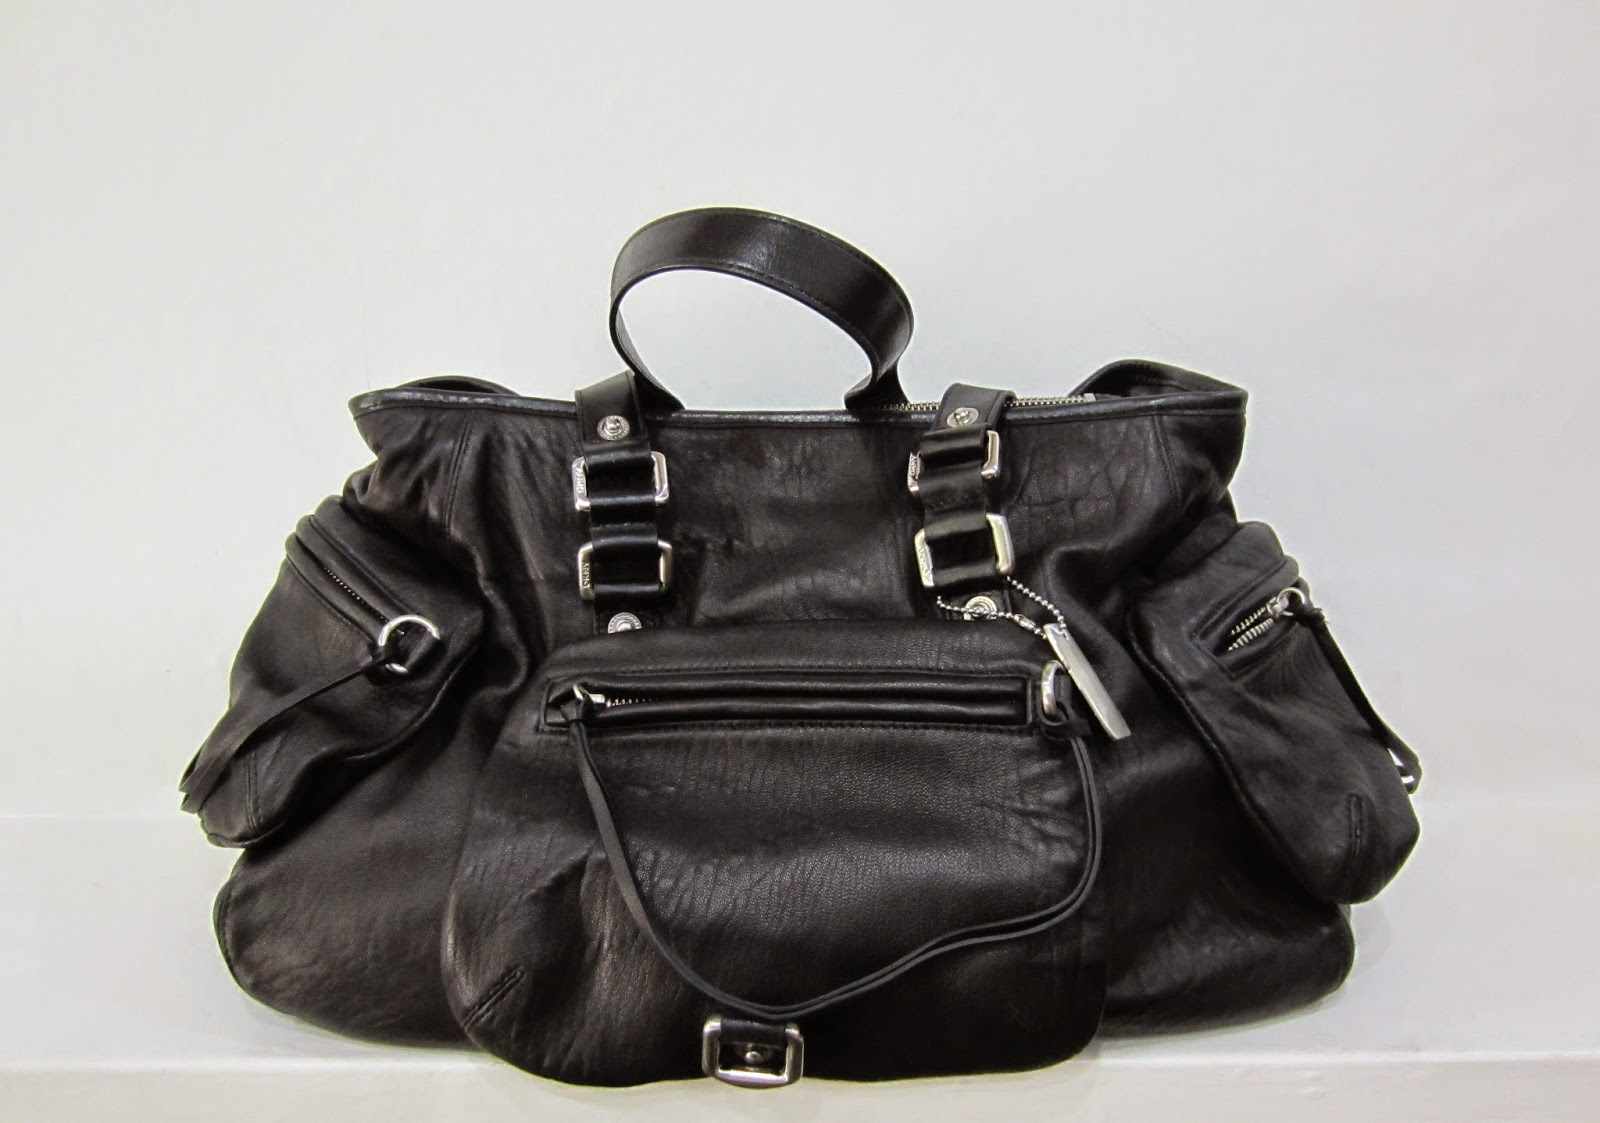 DKNY Black Leather Bag with Silver Hardware